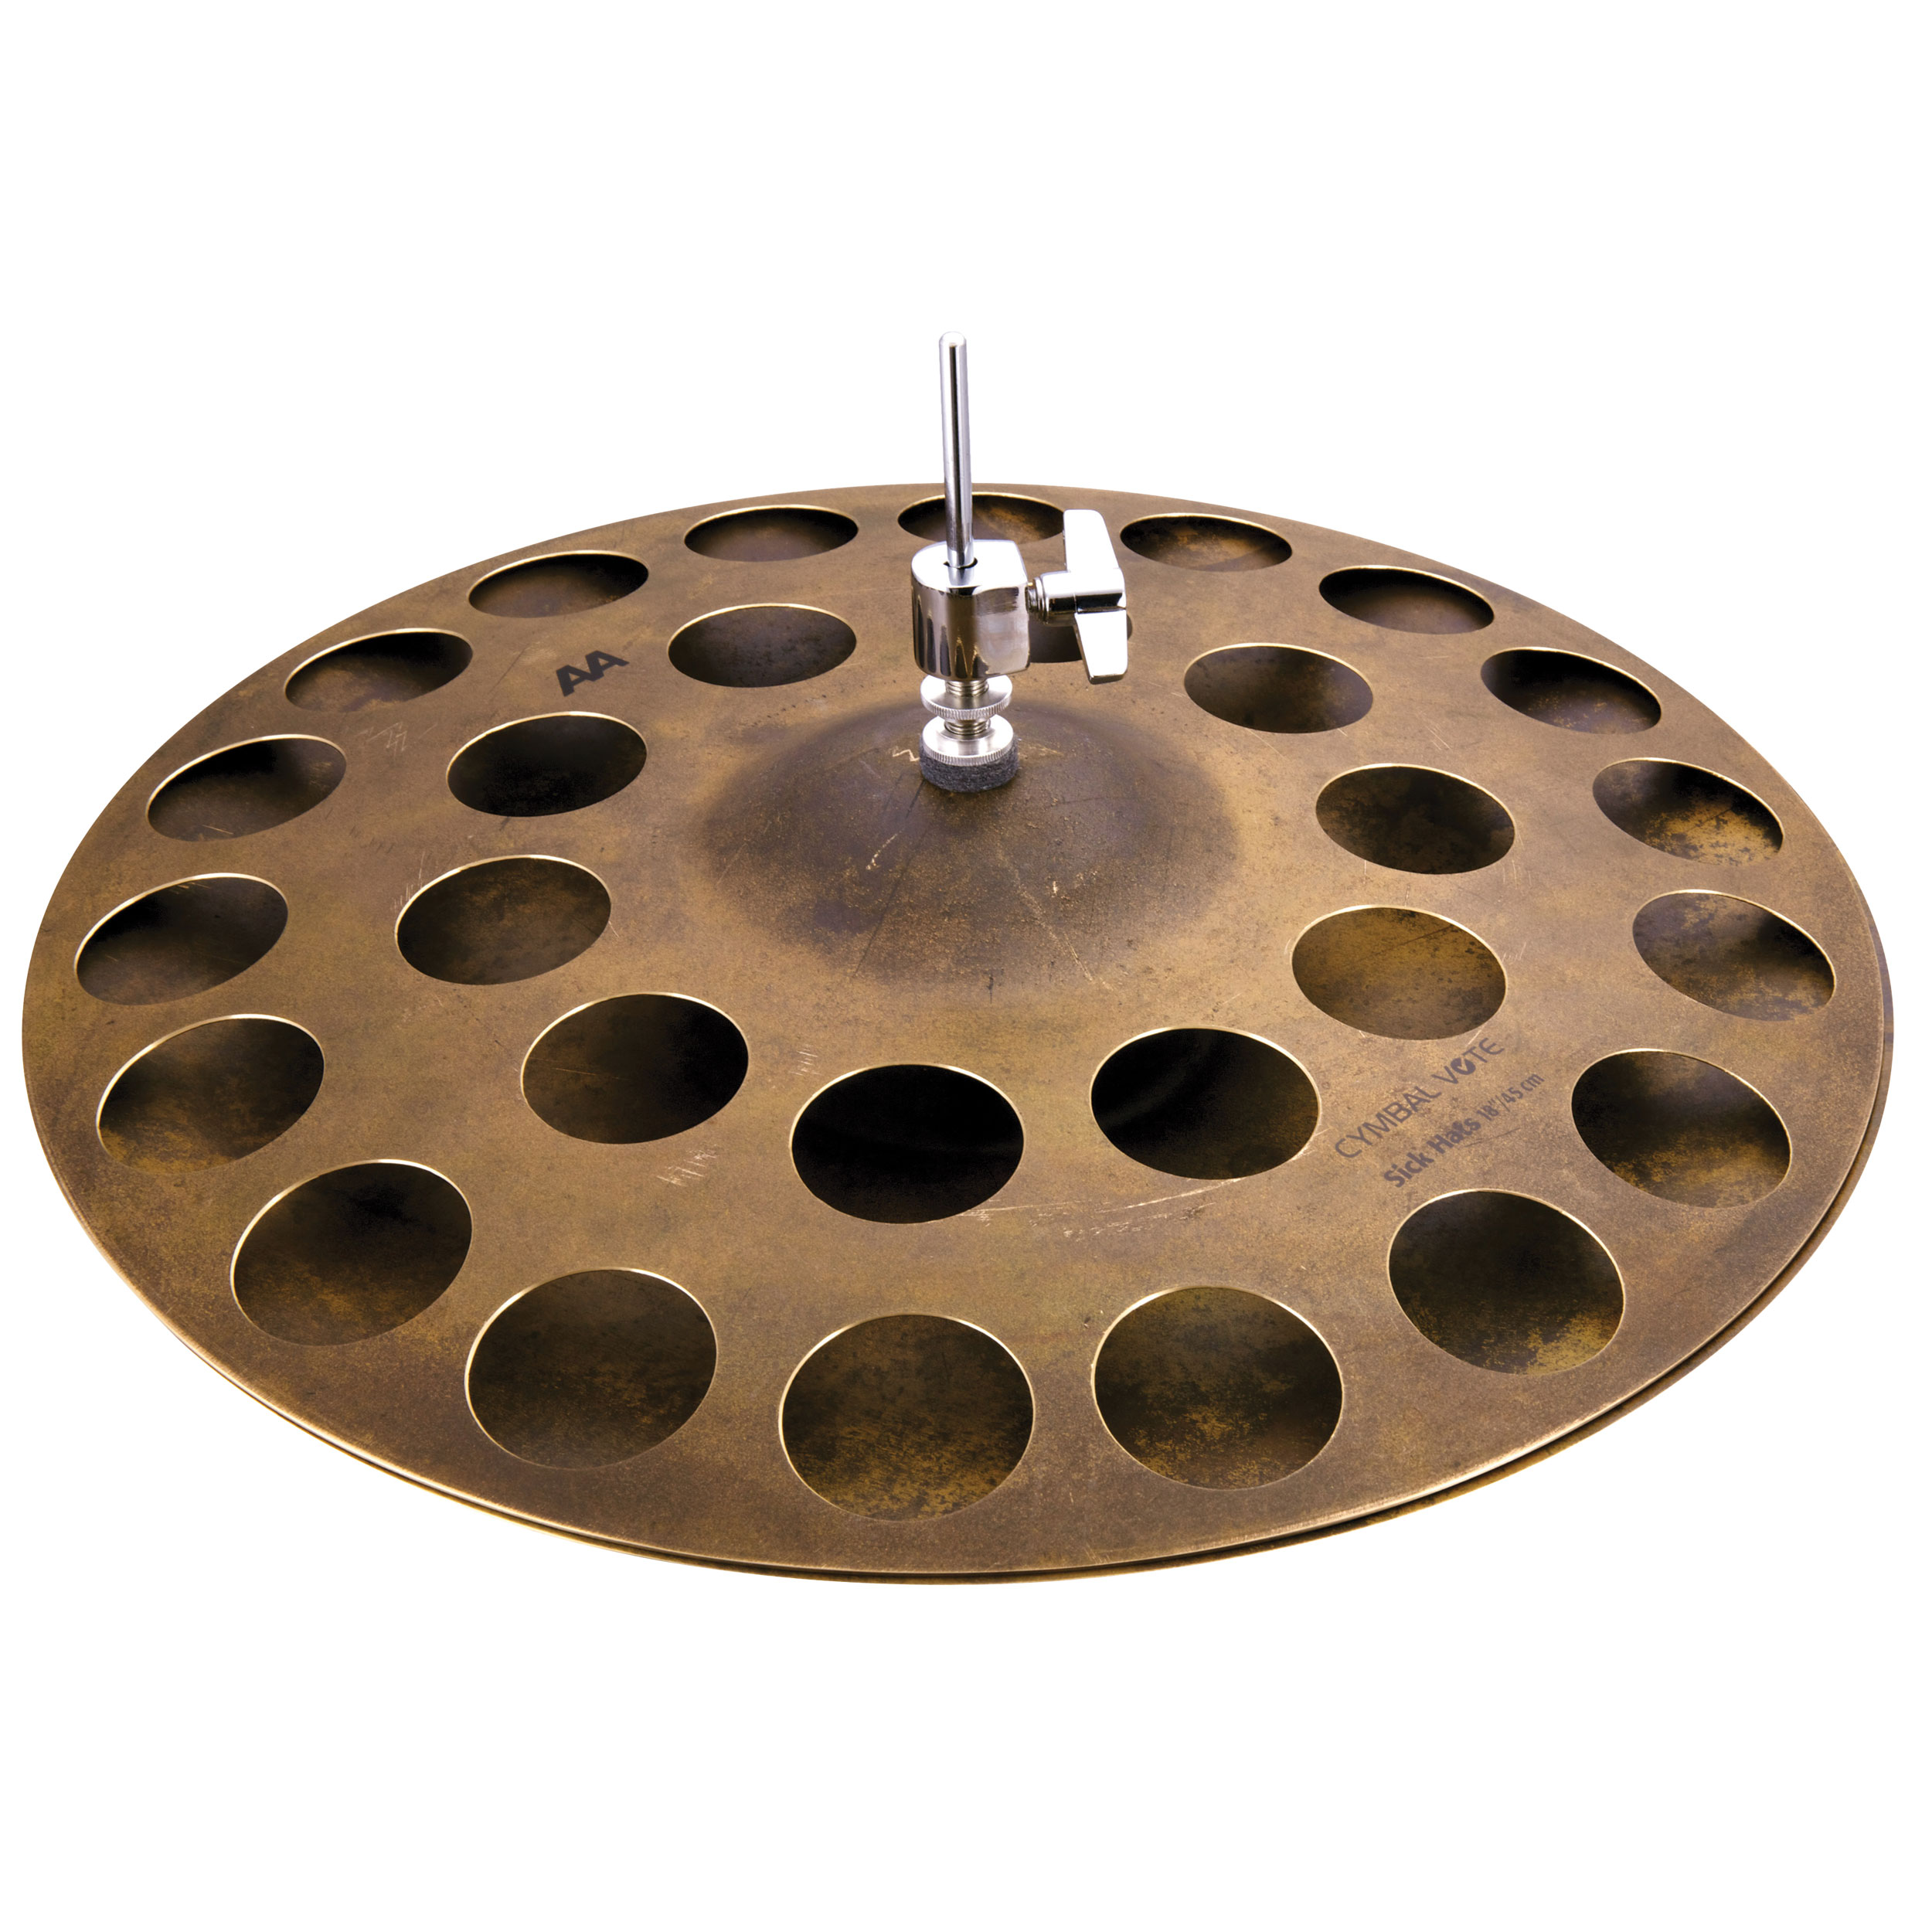 "Sabian 18"" Big and Ugly AA Sick Hats Hi Hat Cymbals"